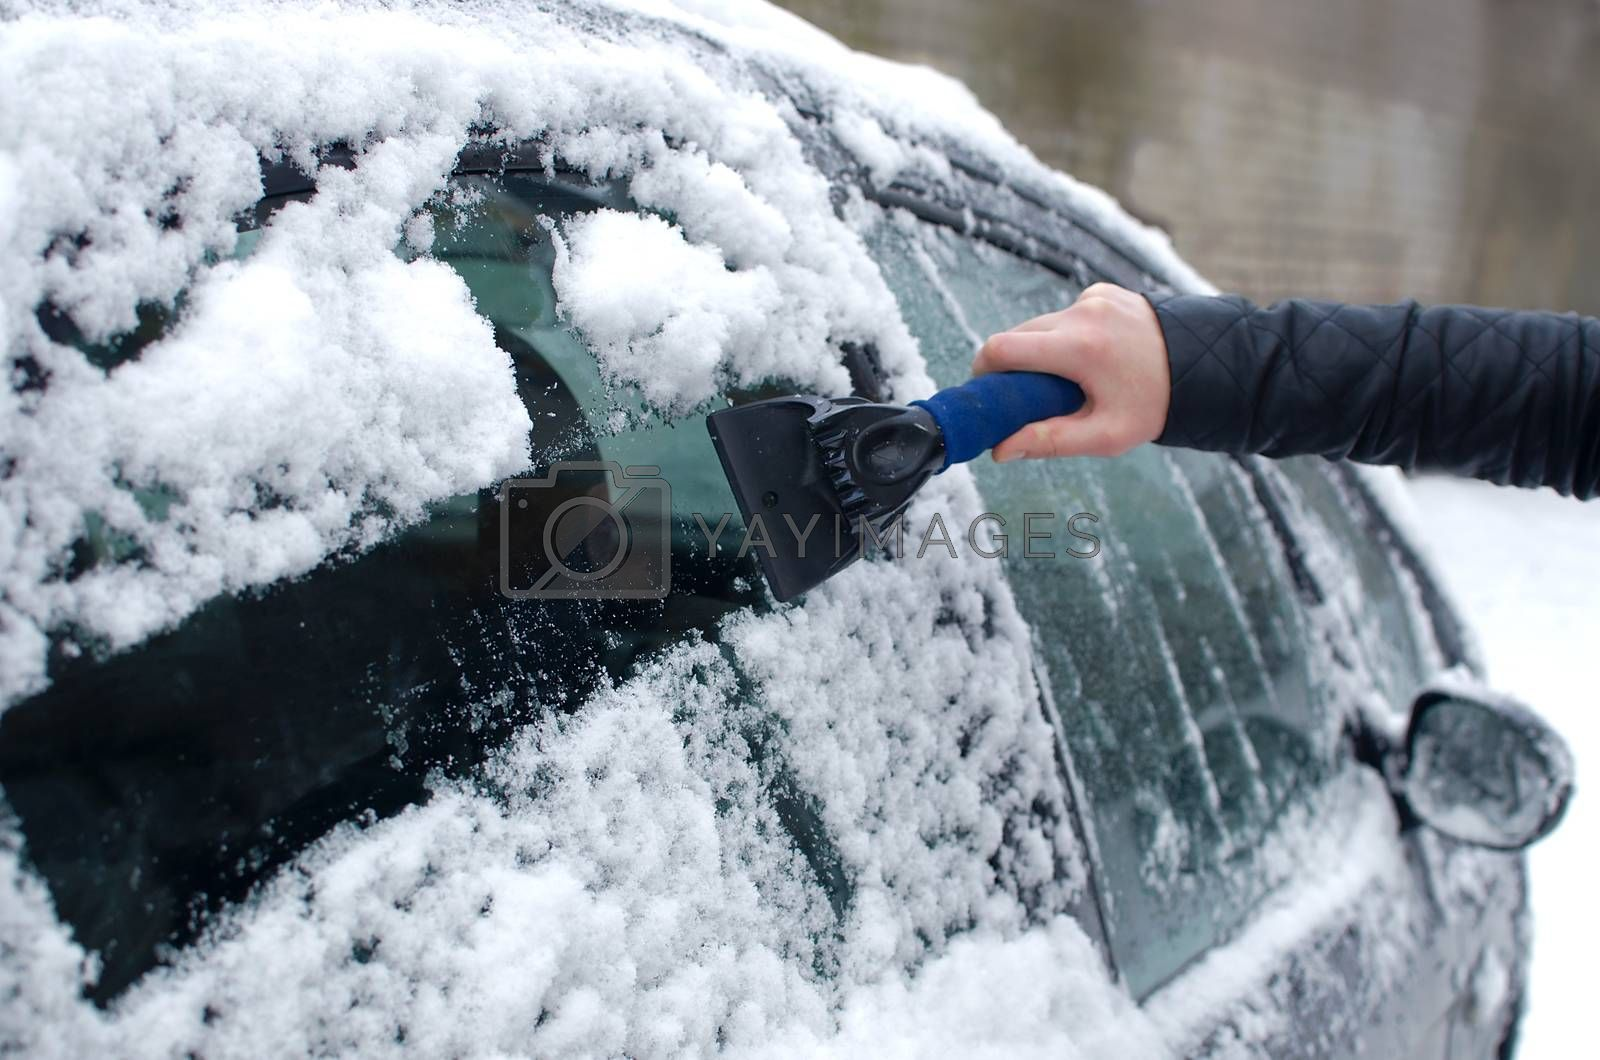 Cleaning snow from windshield. Winter vehicle front windows clean. Woman scraping ice from the windshield of a car. Winter driving. Woman removing snow from automobile. Cold snowy and frosty morning.